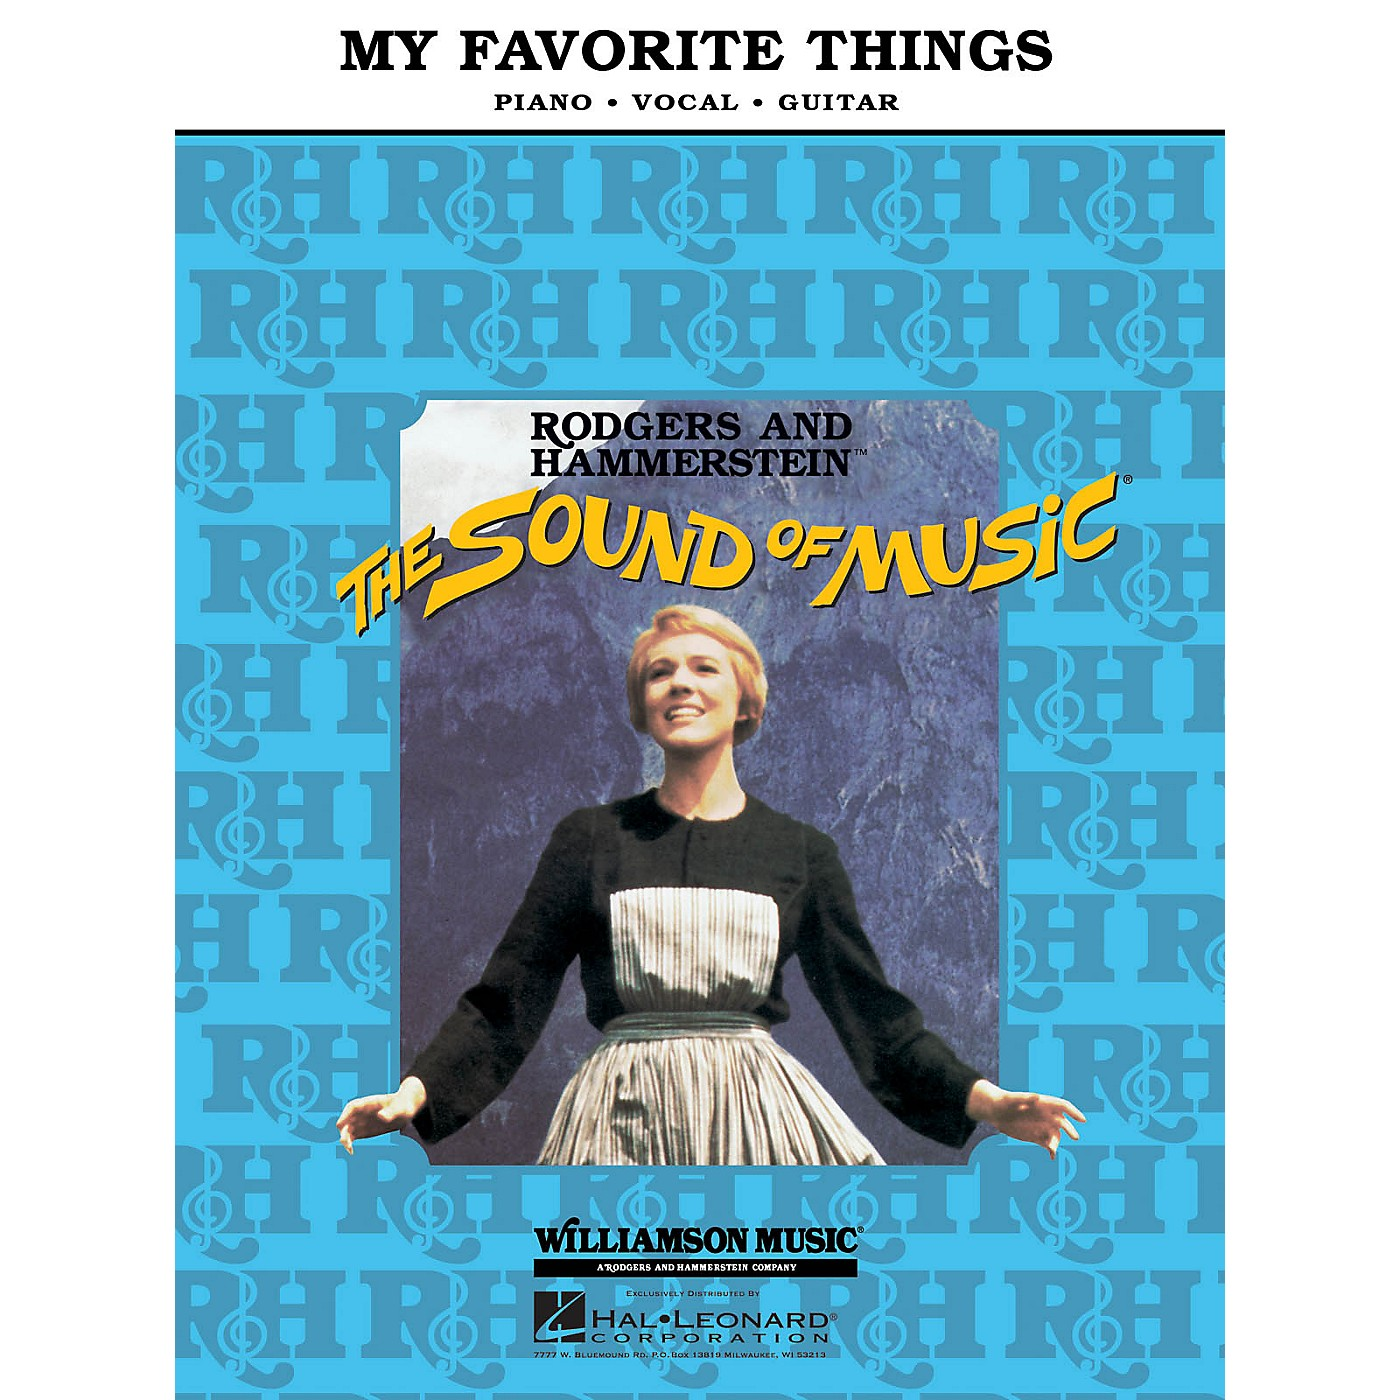 Hal Leonard My Favorite Things (from The Sound of Music) Piano Vocal Series thumbnail